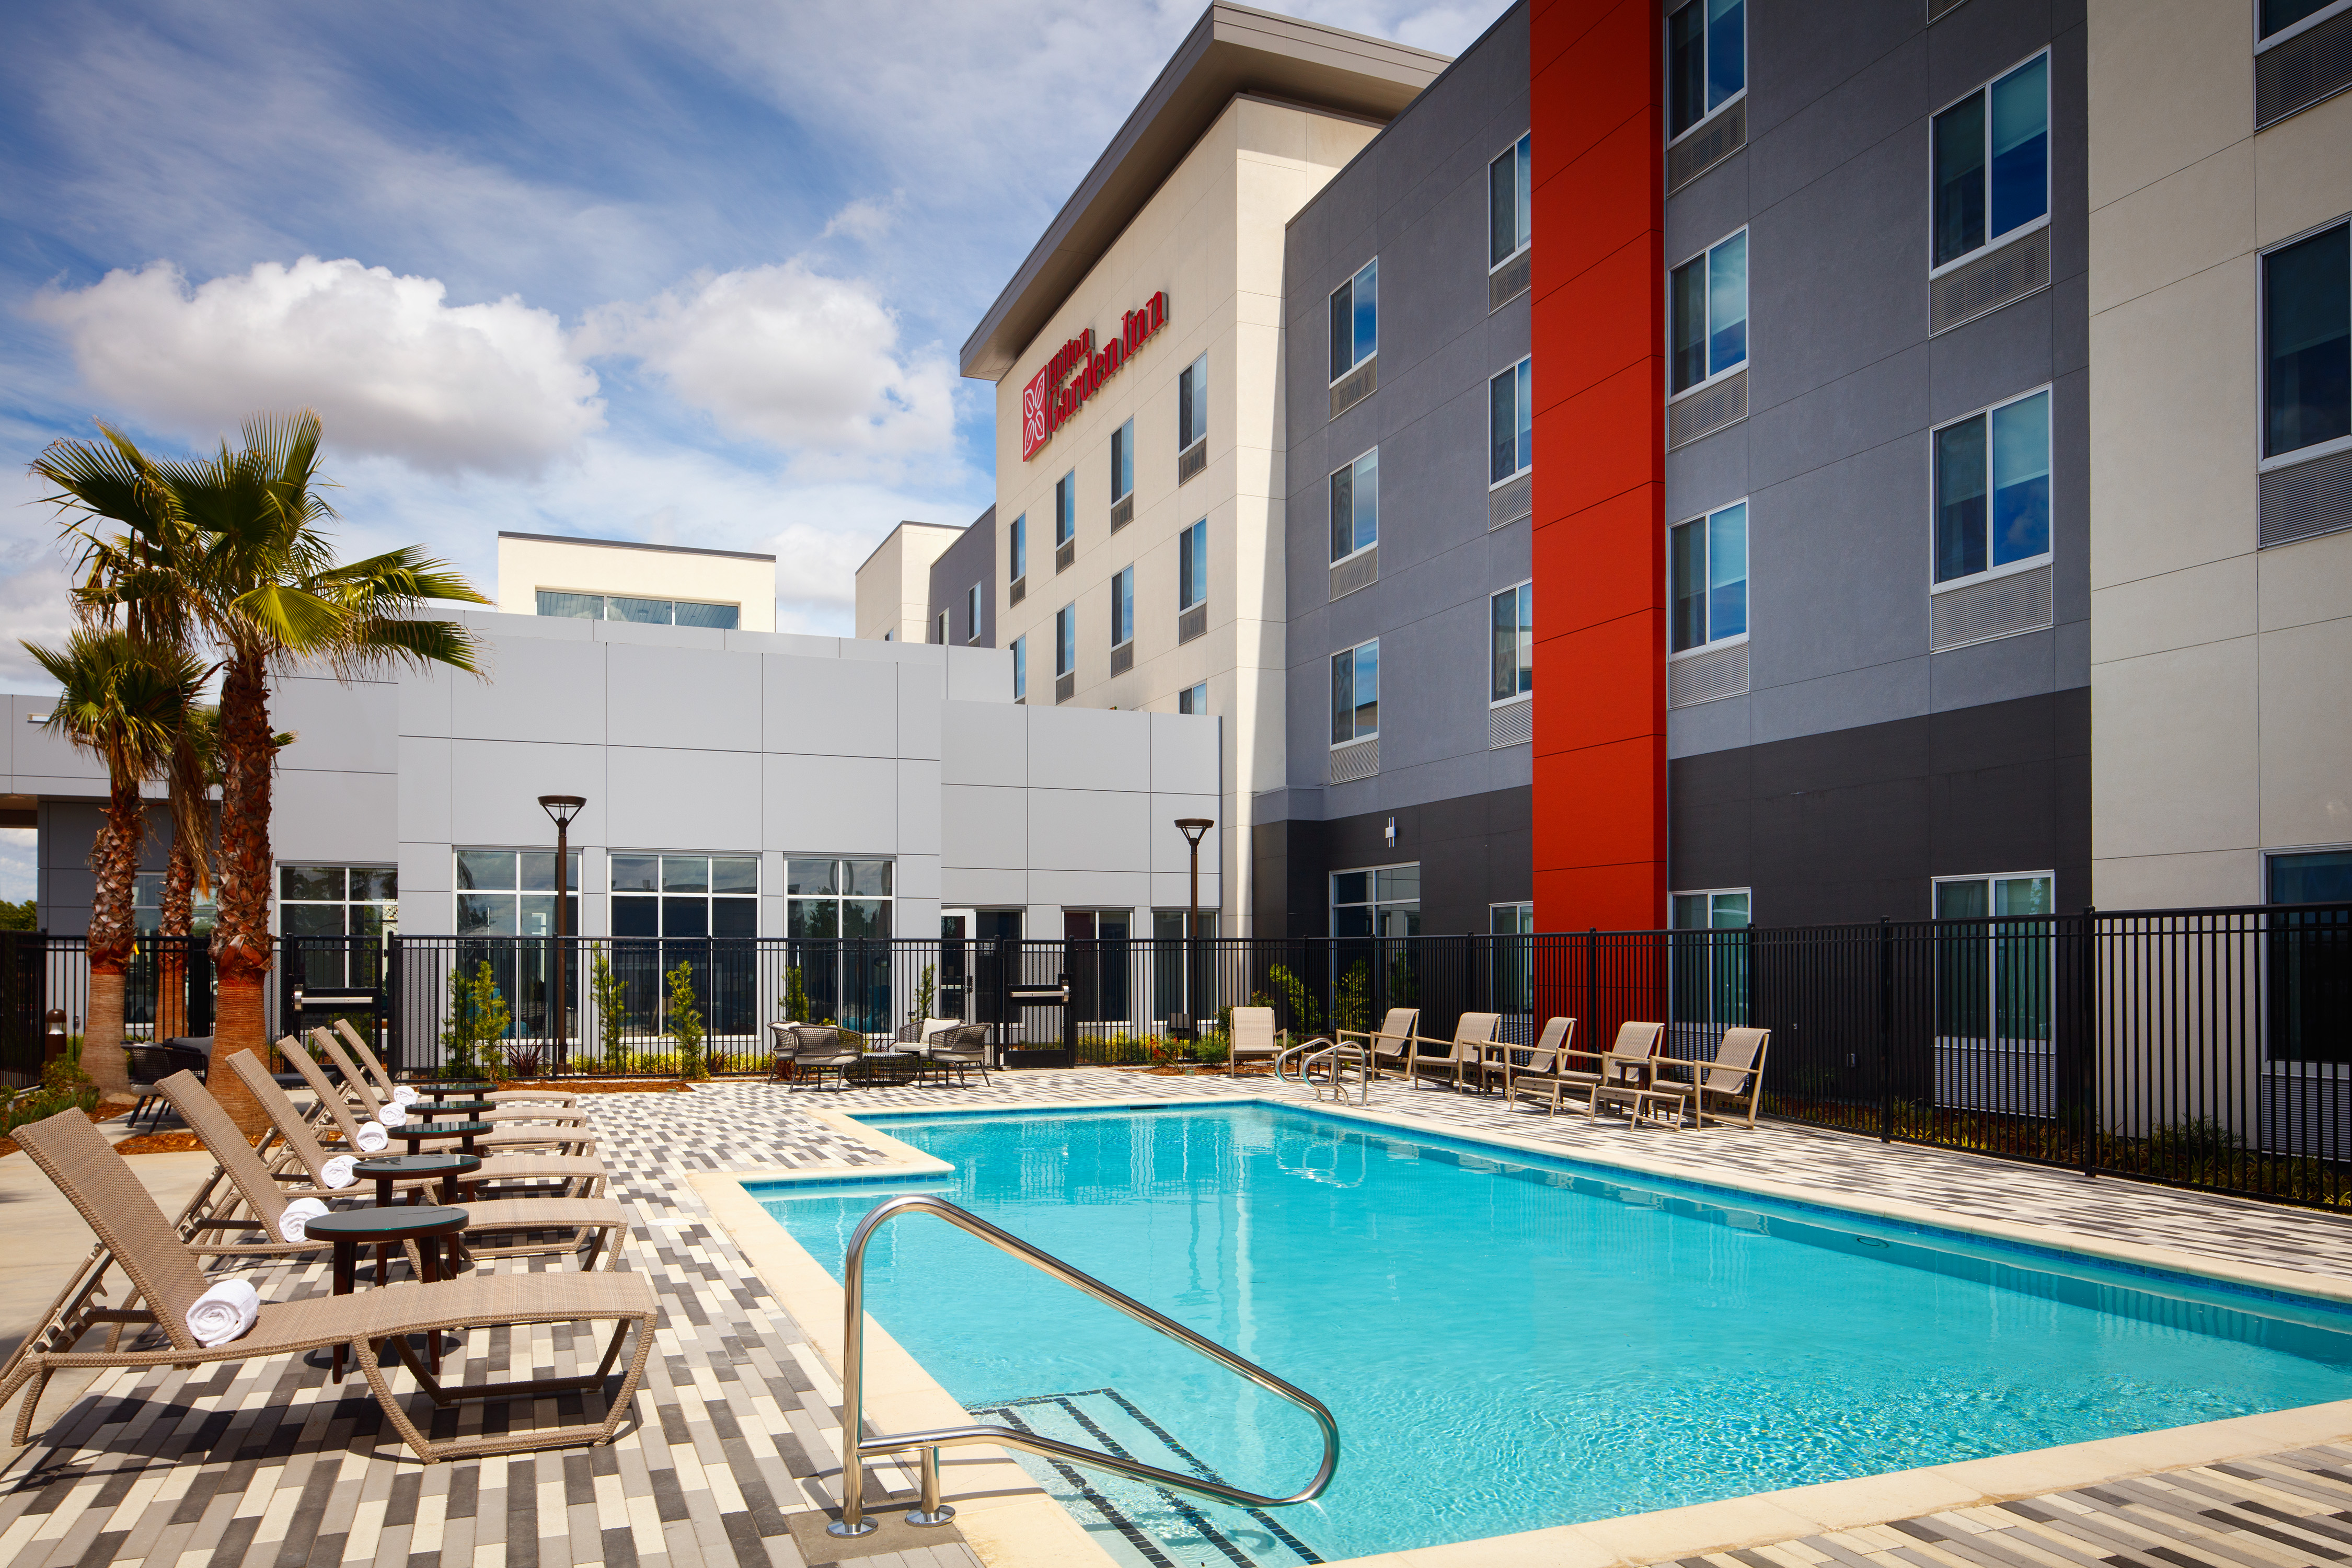 When looking for things to do in Sacramento, the Hilton Garden Inn Sacramento Airport is a good option for lodging.